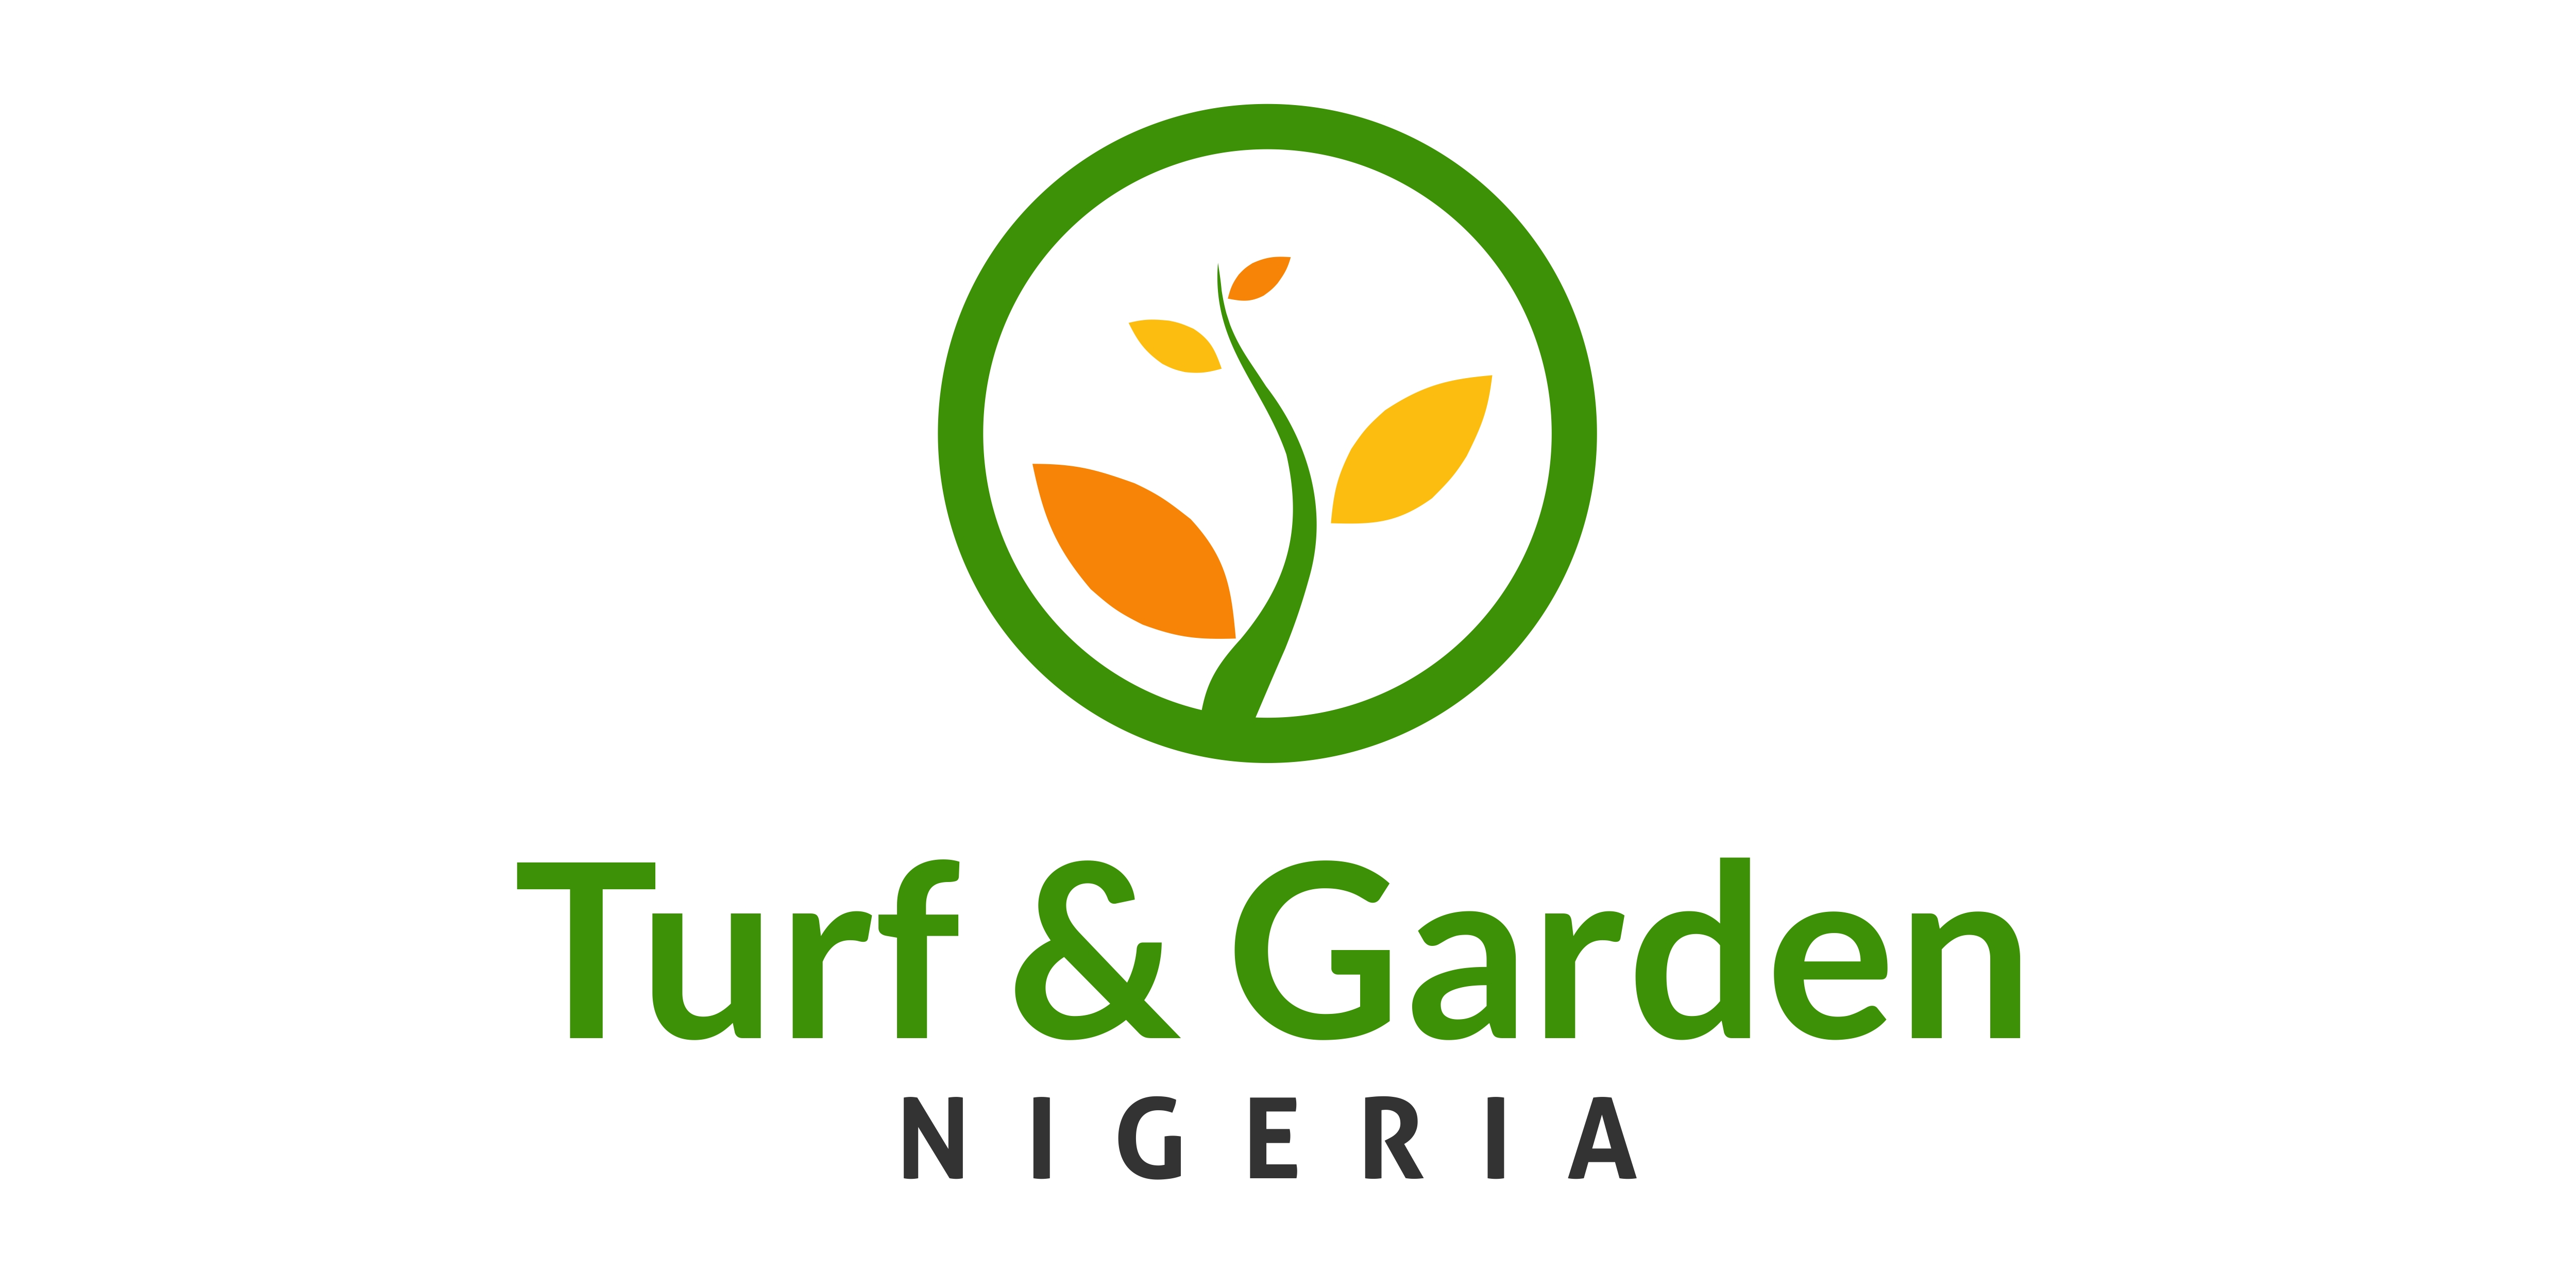 turf and garden nigeria logo